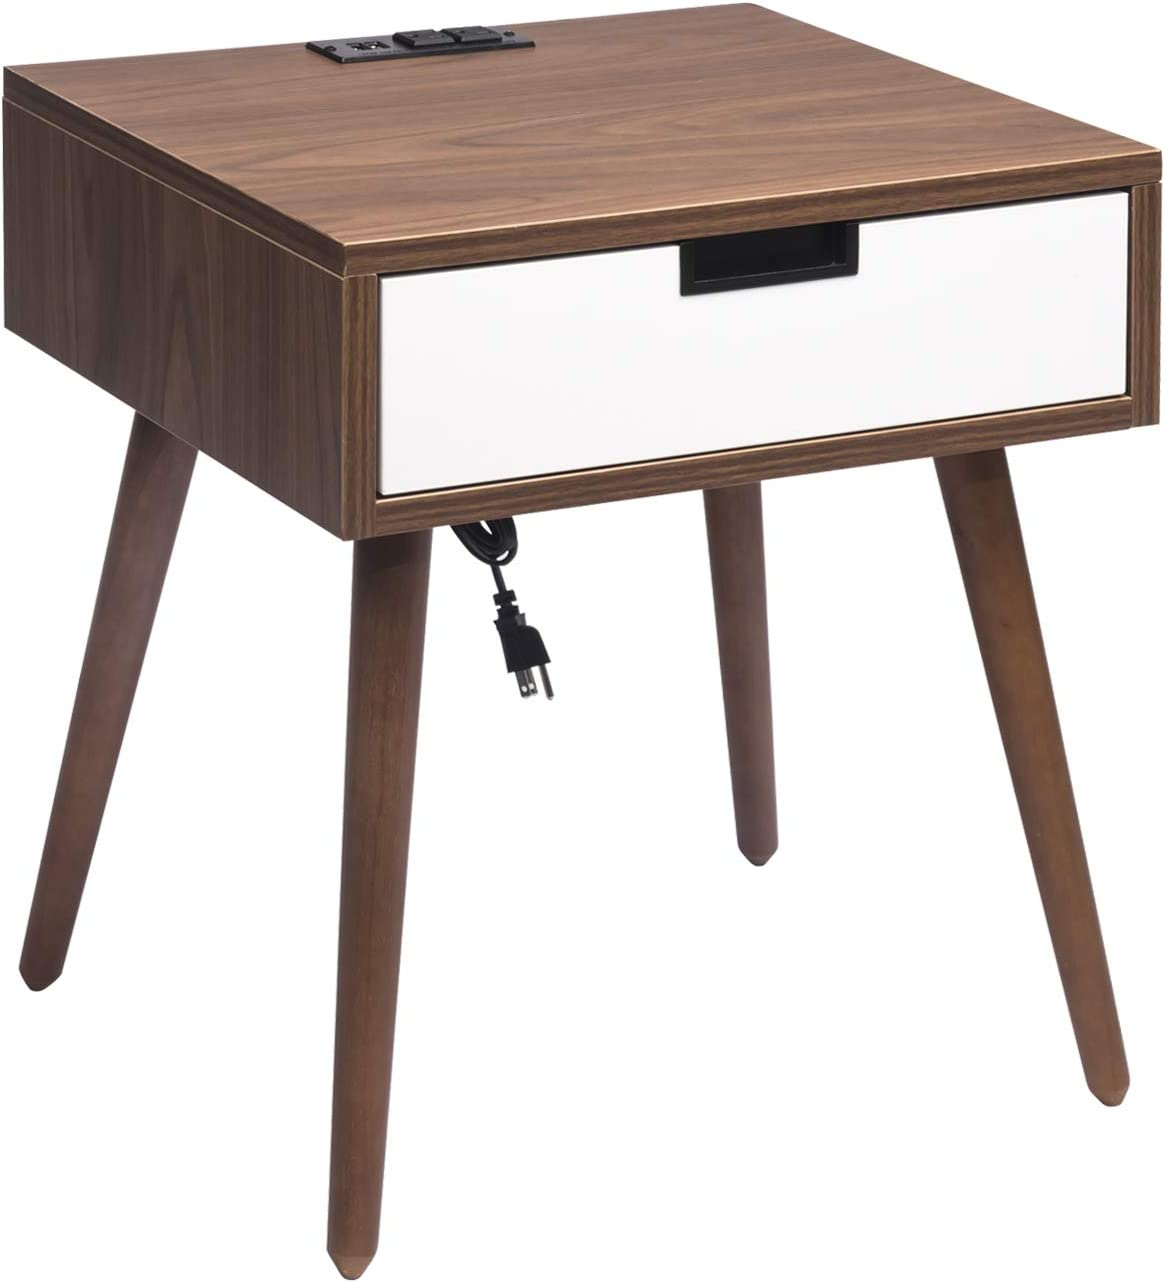 Amazon Com Nightstand End Table With Drawers Storage Frylr Bedside Table Latest With 2 Power Sockets And 2 1a Usb Charging Ports Design For Living Room Sofa Light Walnut And White Kitchen Dining,What Paint For Bathroom Cabinets